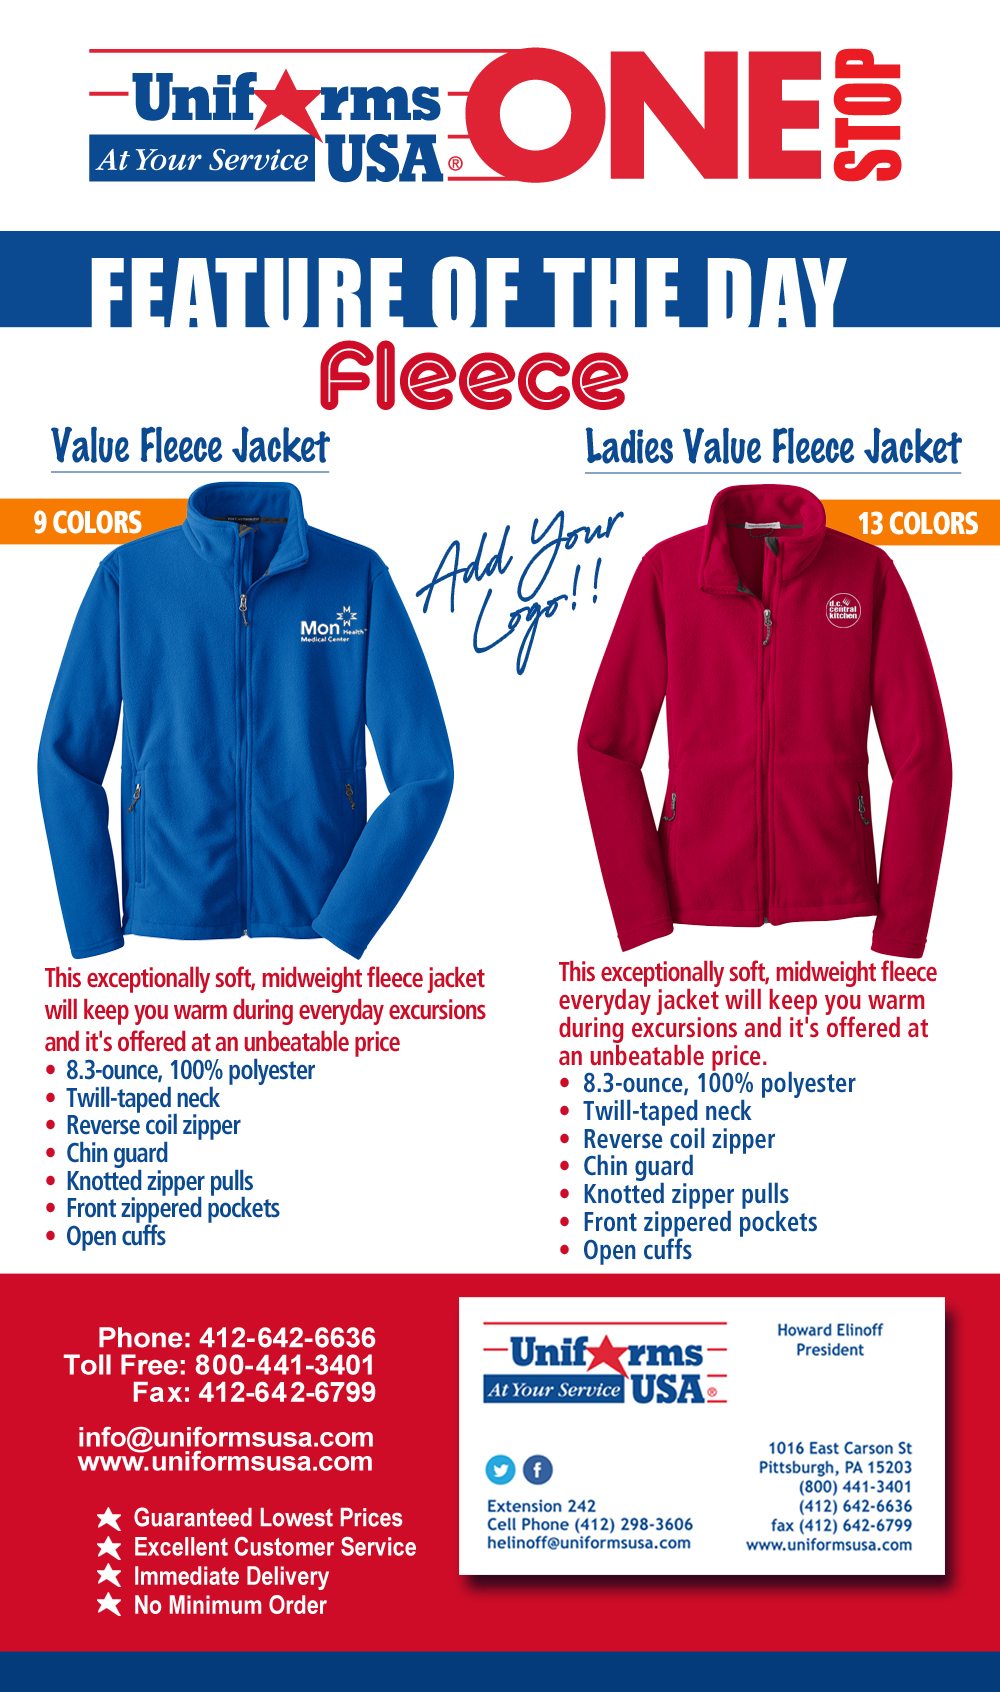 UUSA_fleece_blast